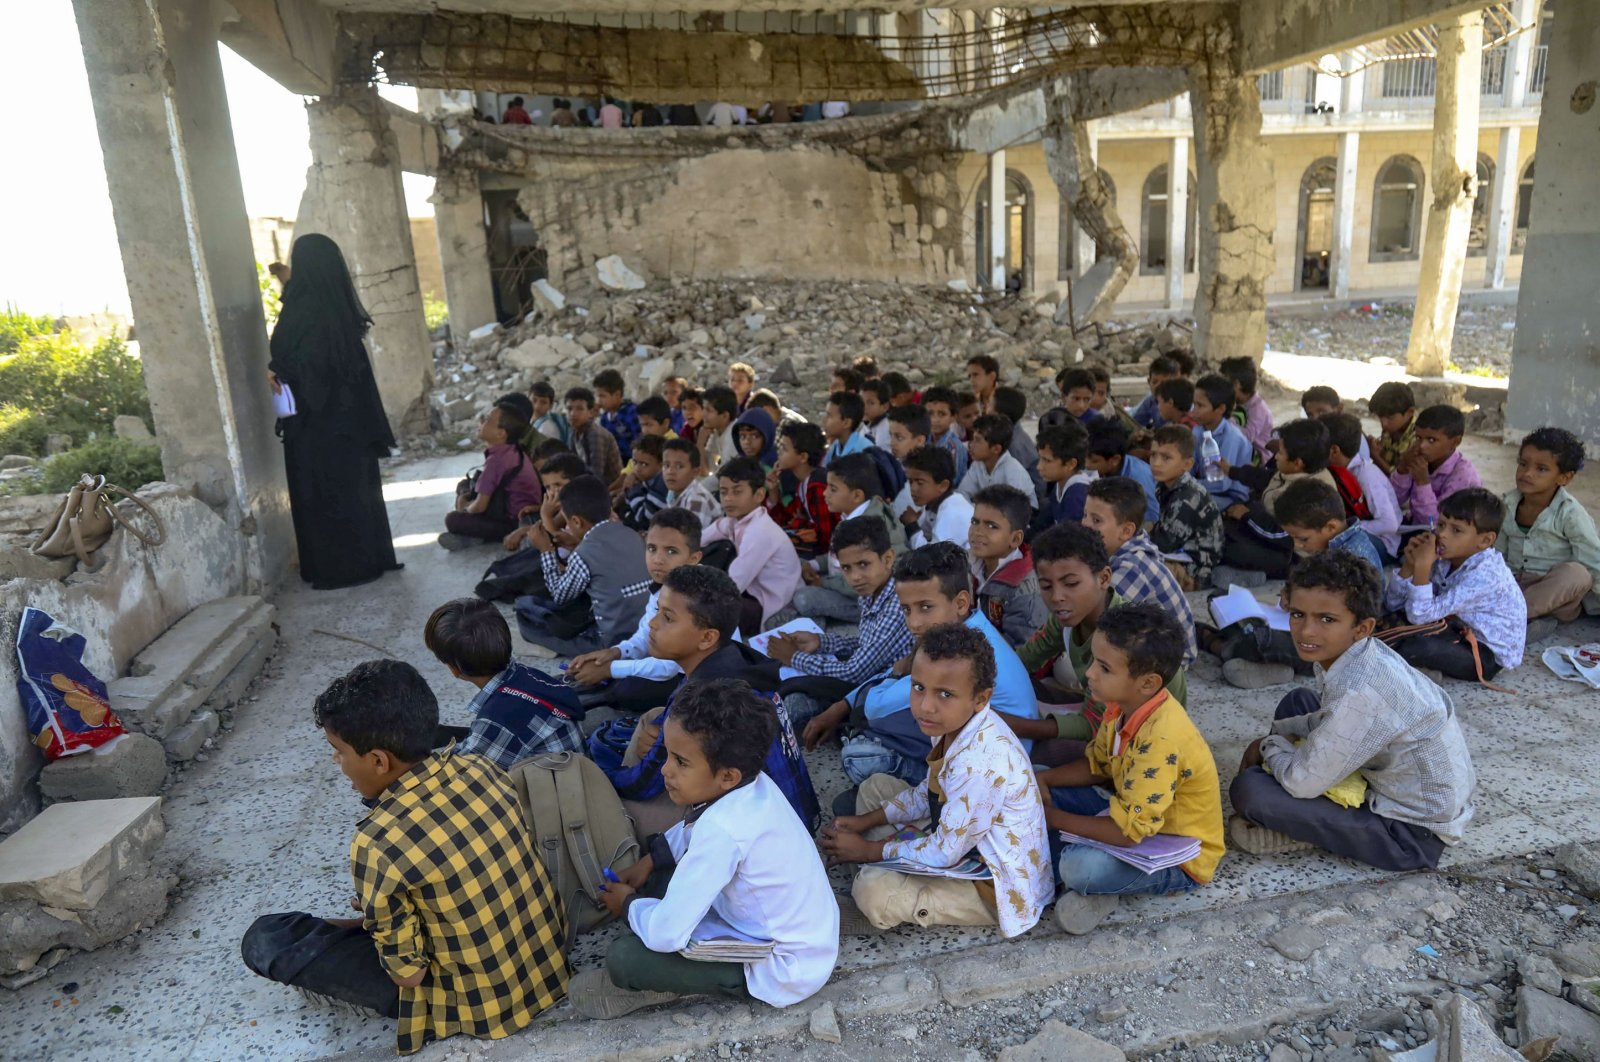 Yemeni pupils attend class on the first day of the new academic year in a makeshift classroom in their school compound, which was heavily damaged two years ago in an air strike, in the country's third-city of Taez on Oct. 7, 2020. (AFP Photo)